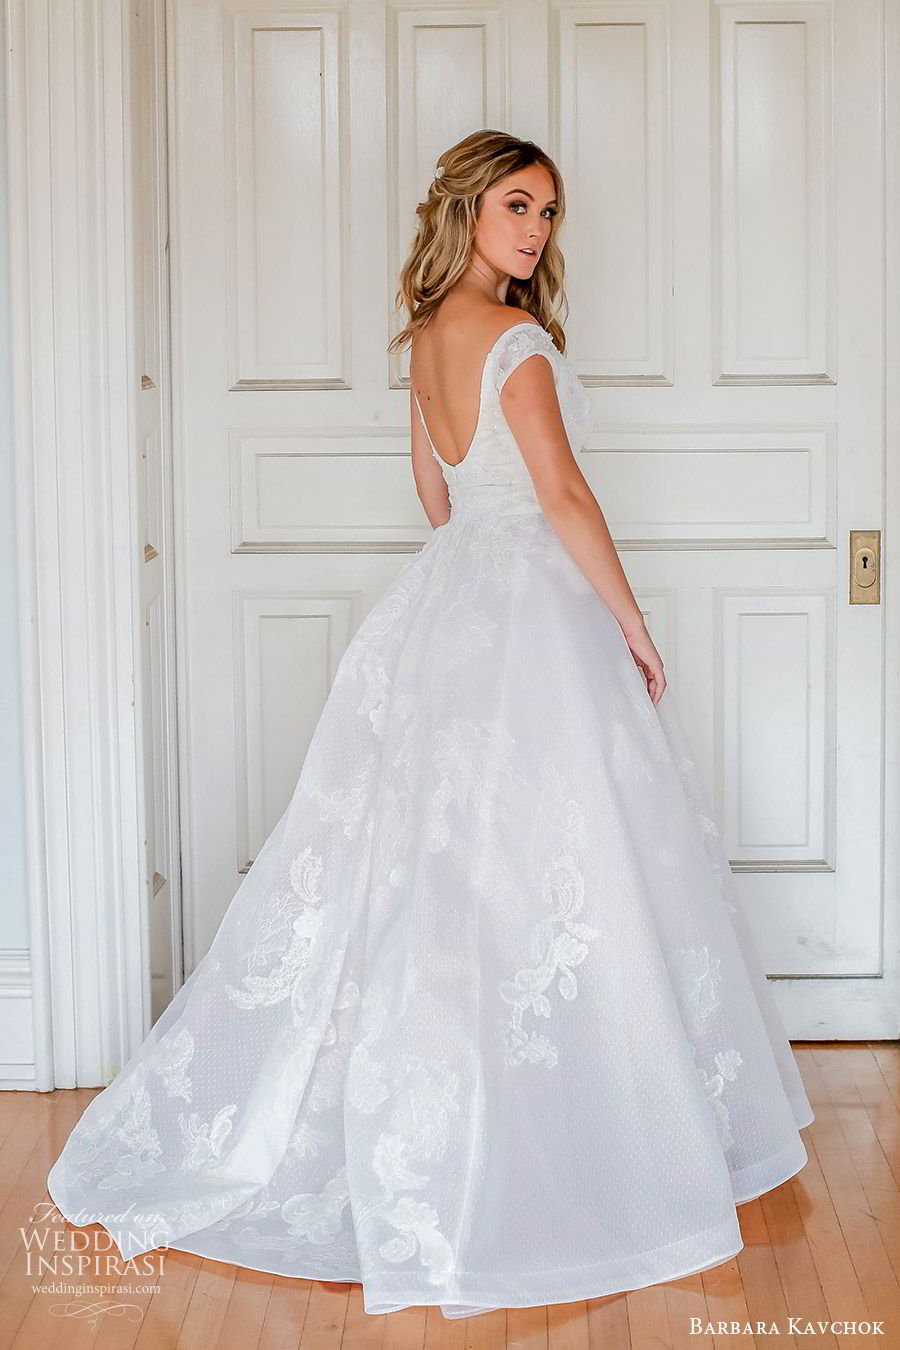 barbara kavchok fall 2019 bridal off shoulder sweetheart embellished lace a line ball gown wedding dress (4) bv scoop back chapel train elegant princess romantic